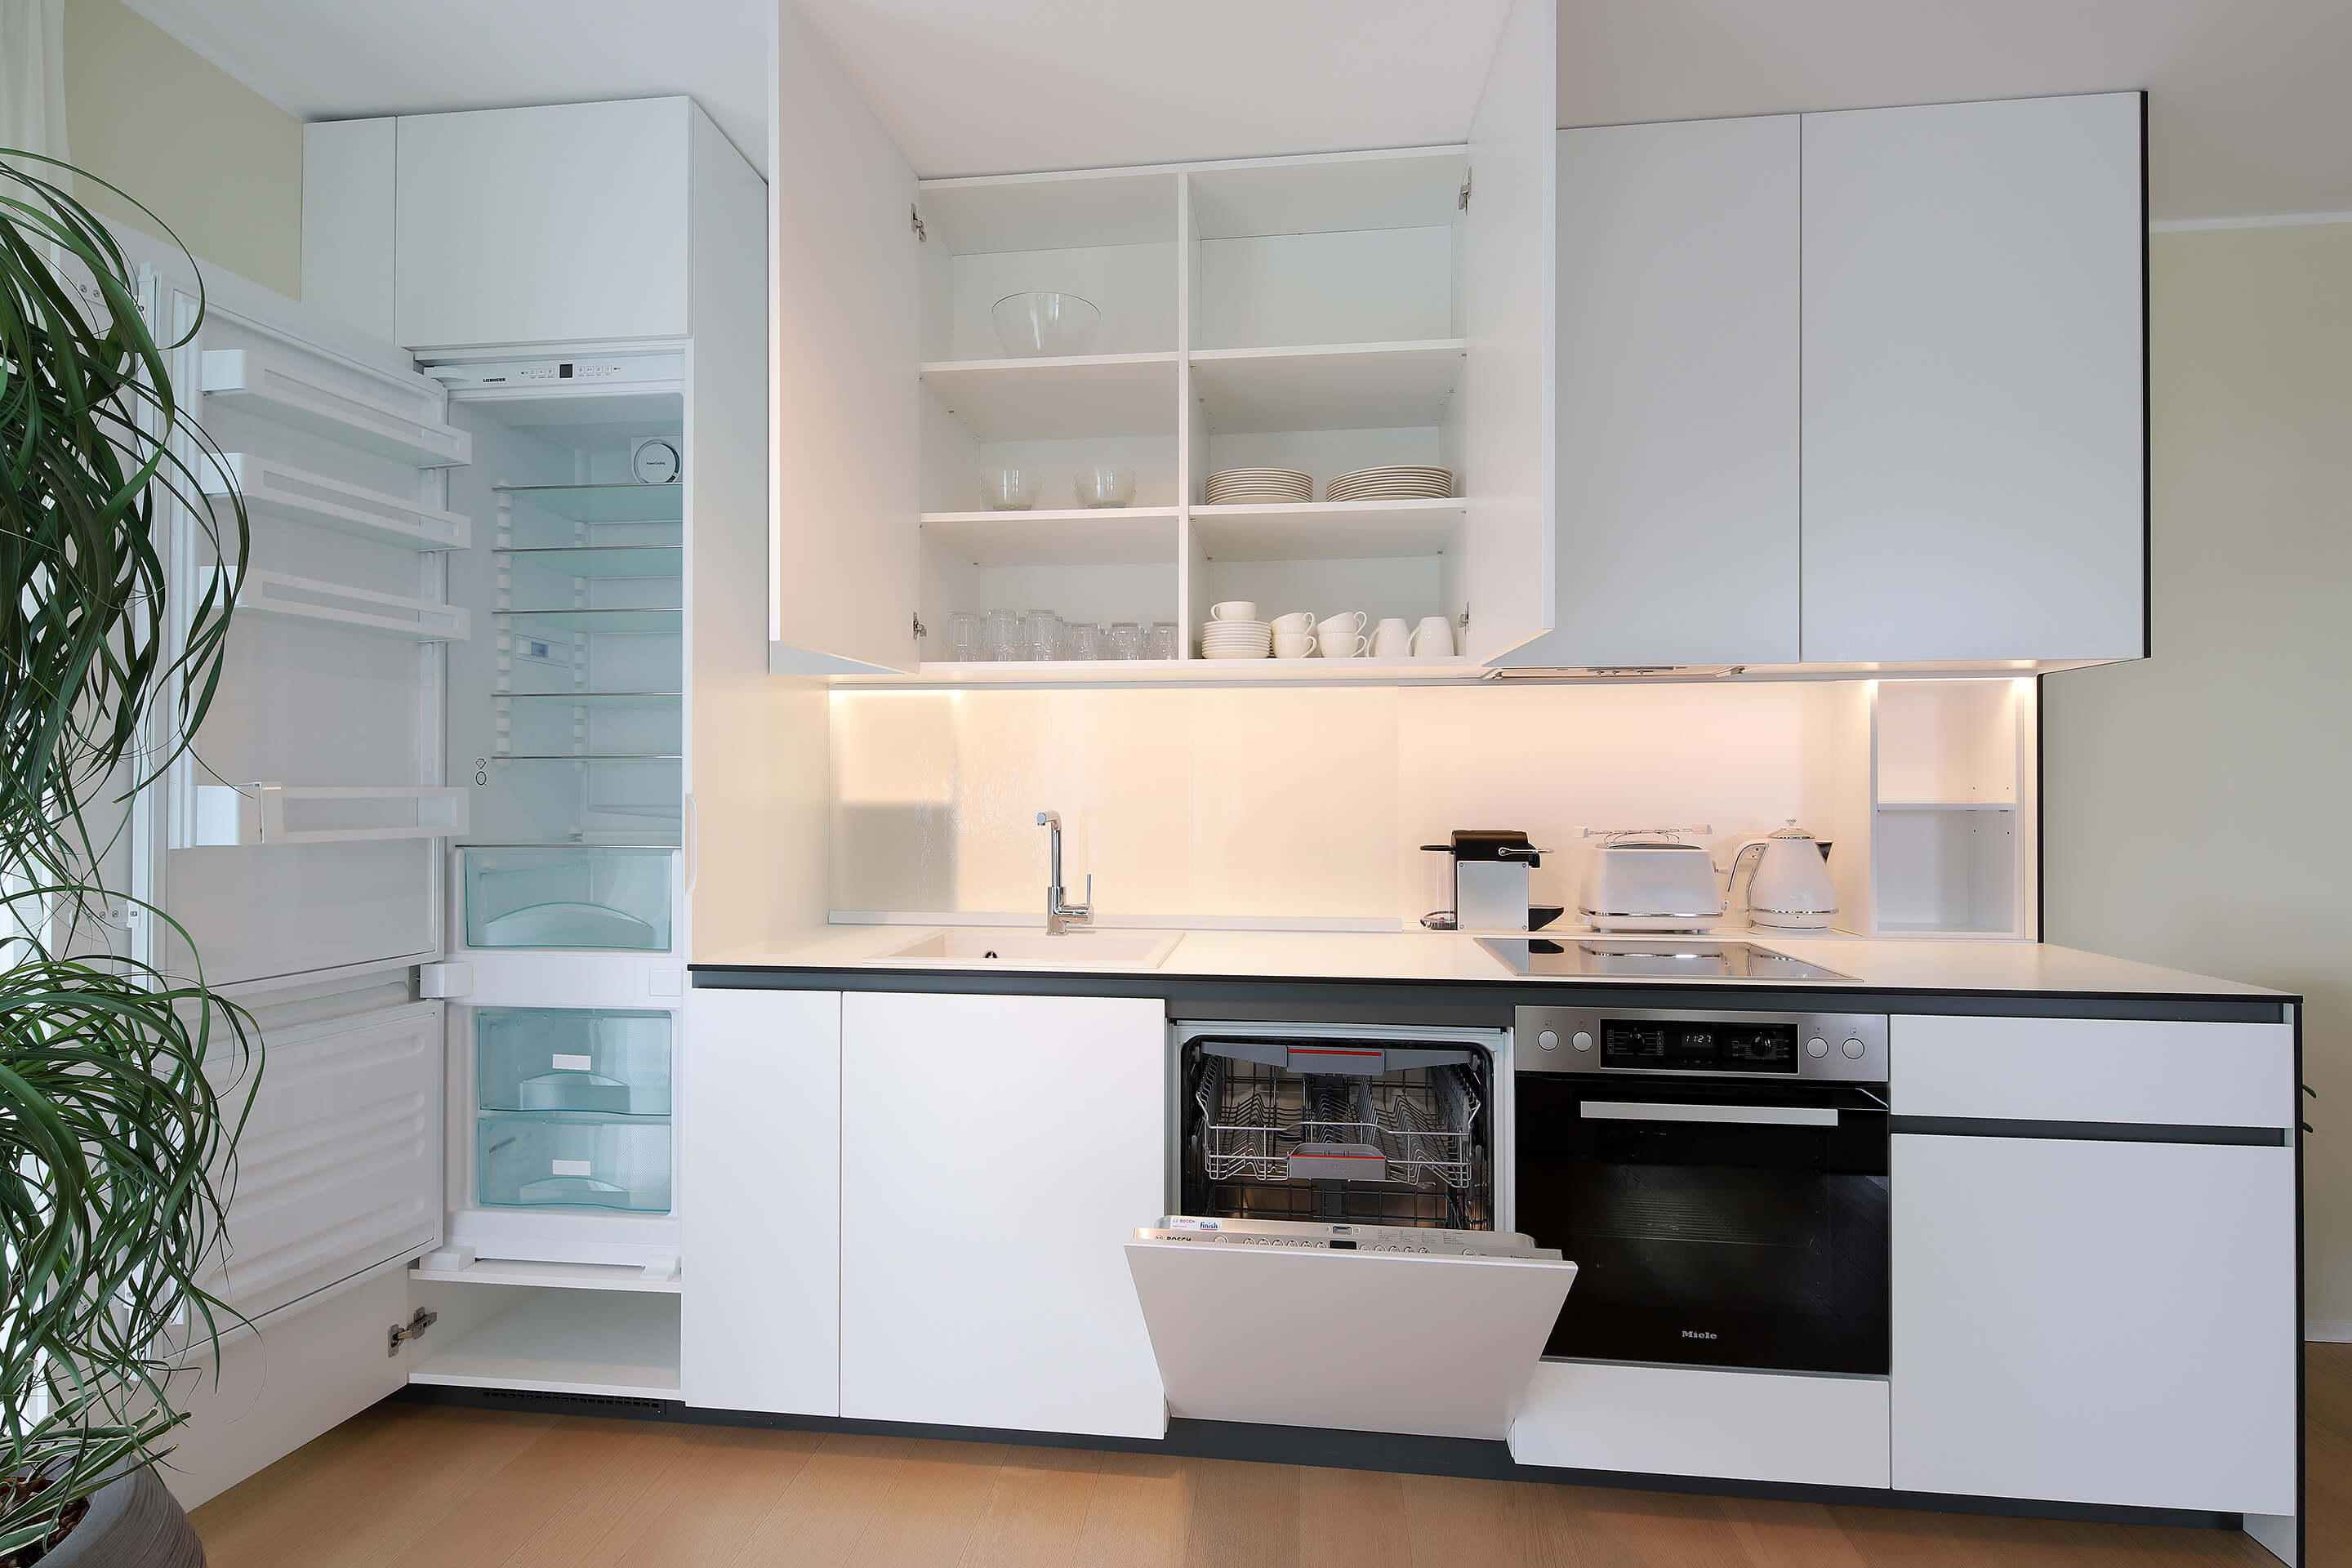 S1 -kitchen and accessories